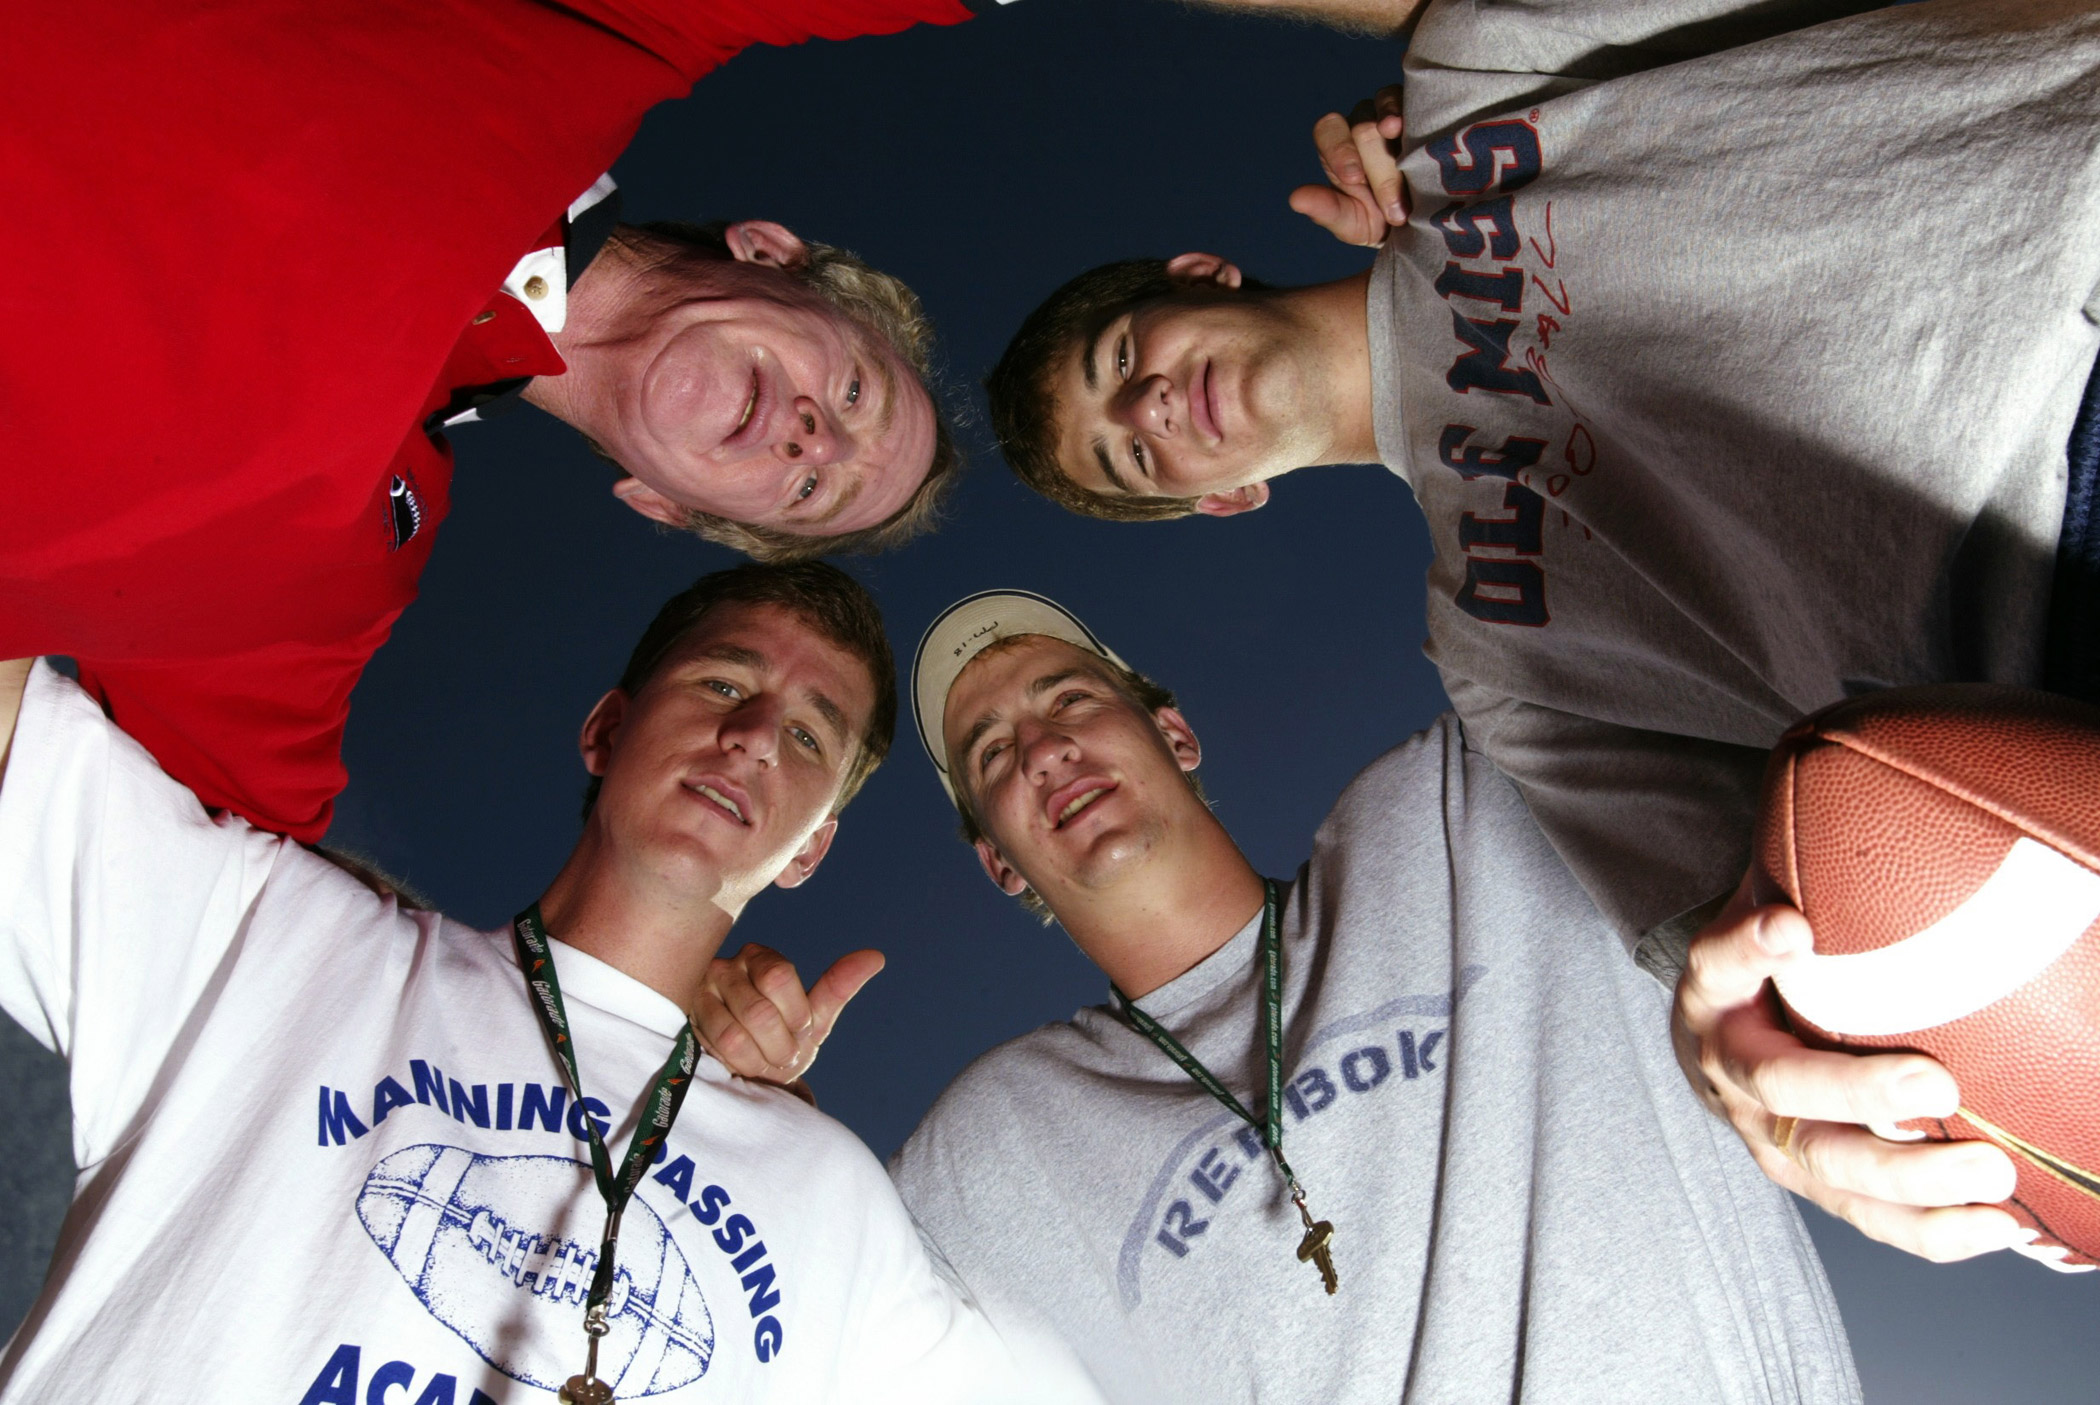 The Mannings pose for a portrait at the  Manning Passing Academy in 2003. Clockwise from top left are Archie, Eli, Peyton and Cooper.